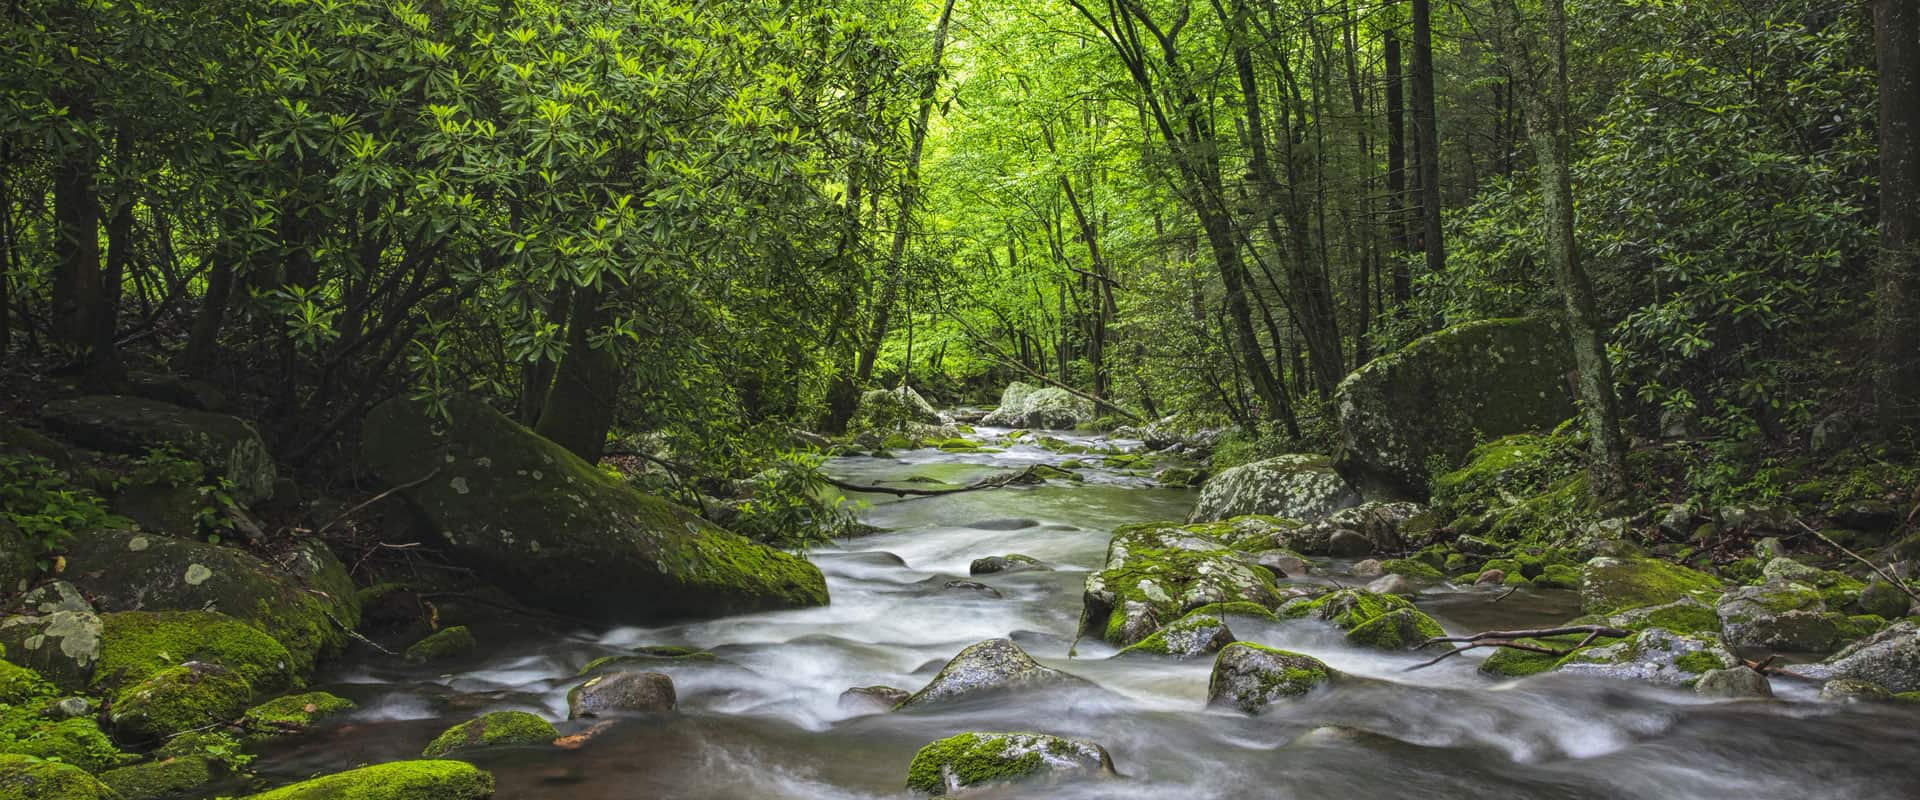 Hiking in the Smoky Mountain National Park